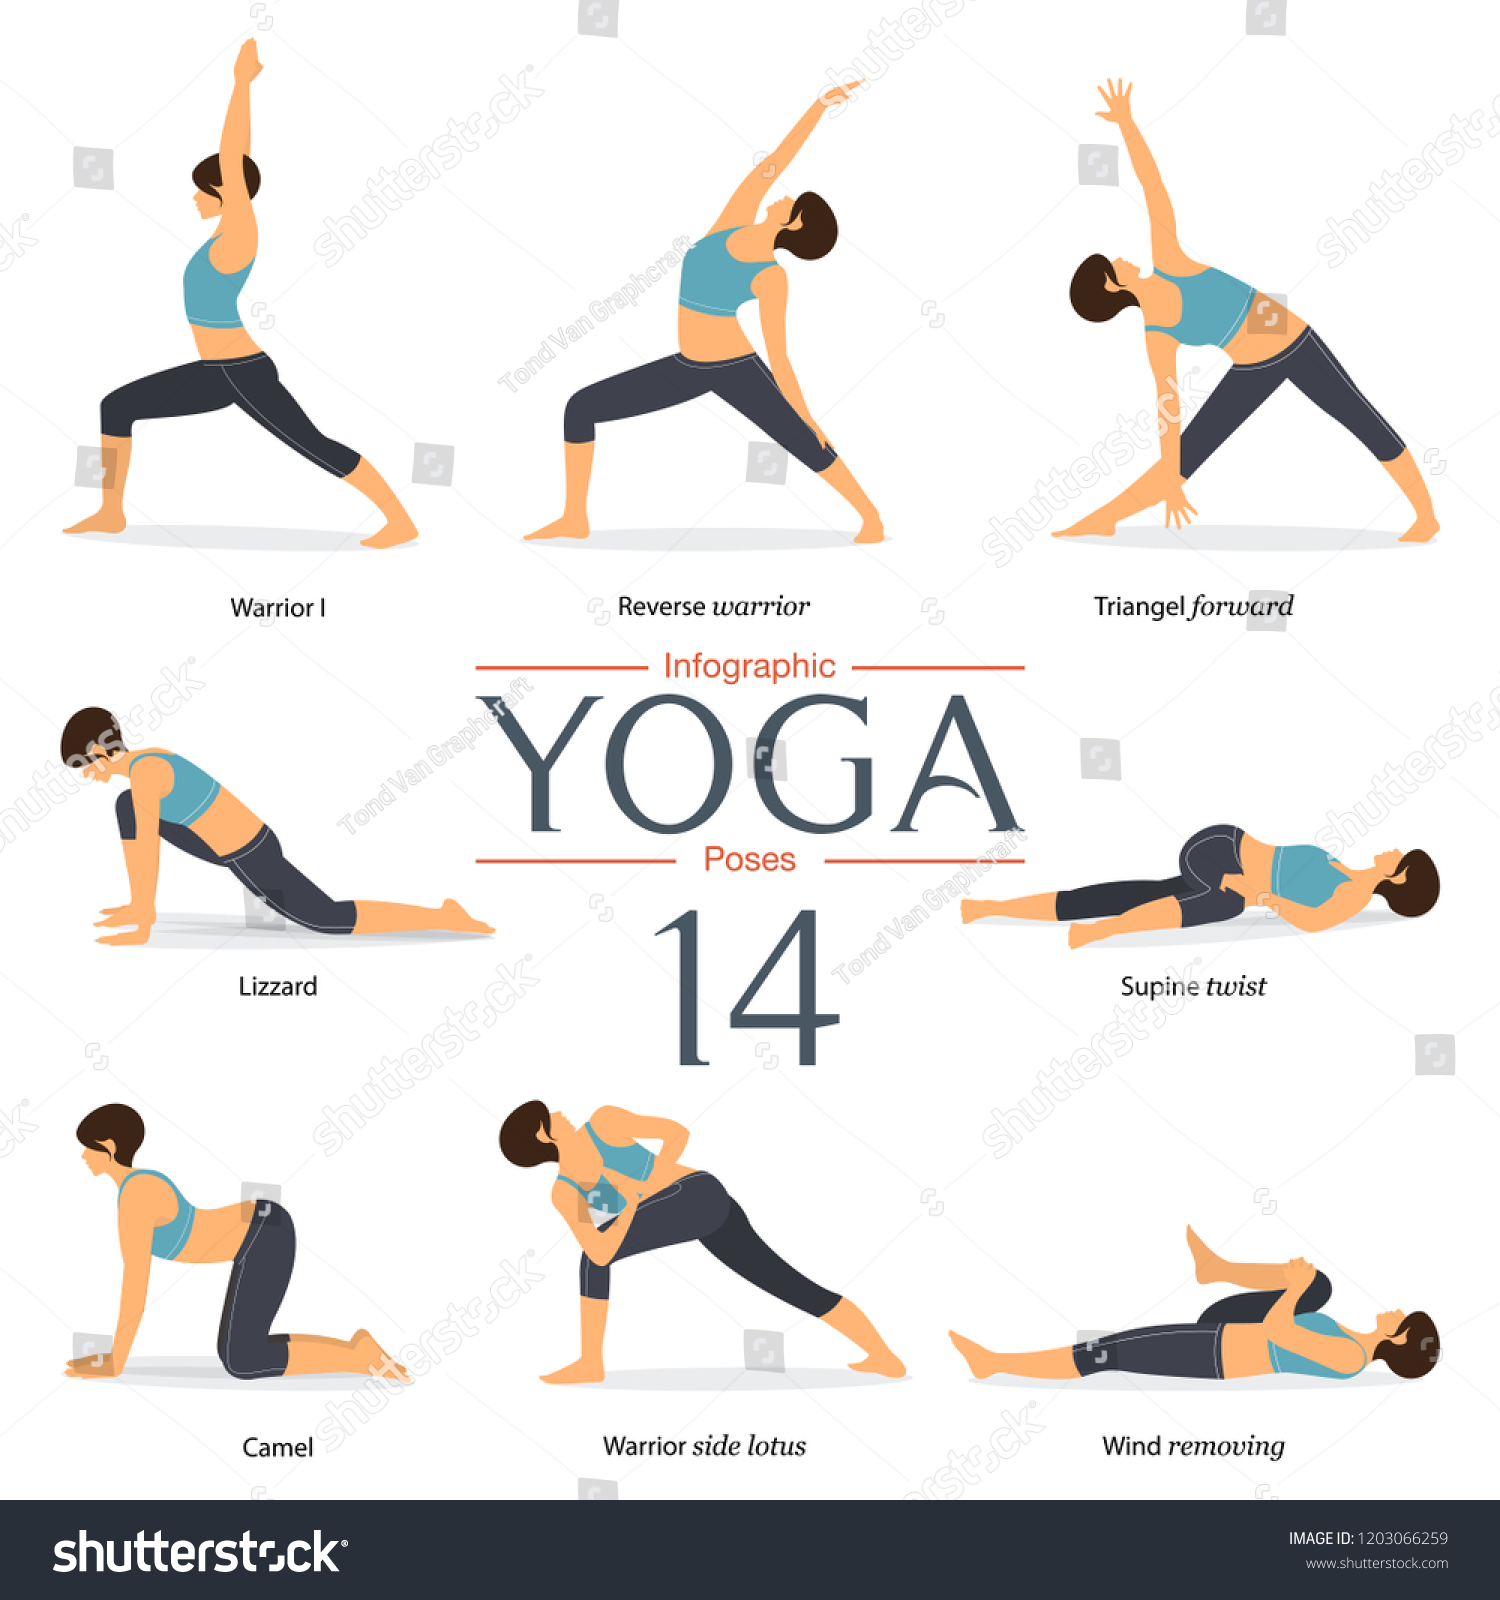 Set 37 Yoga Poses Flat Design Stock Vector (Royalty Free) 37